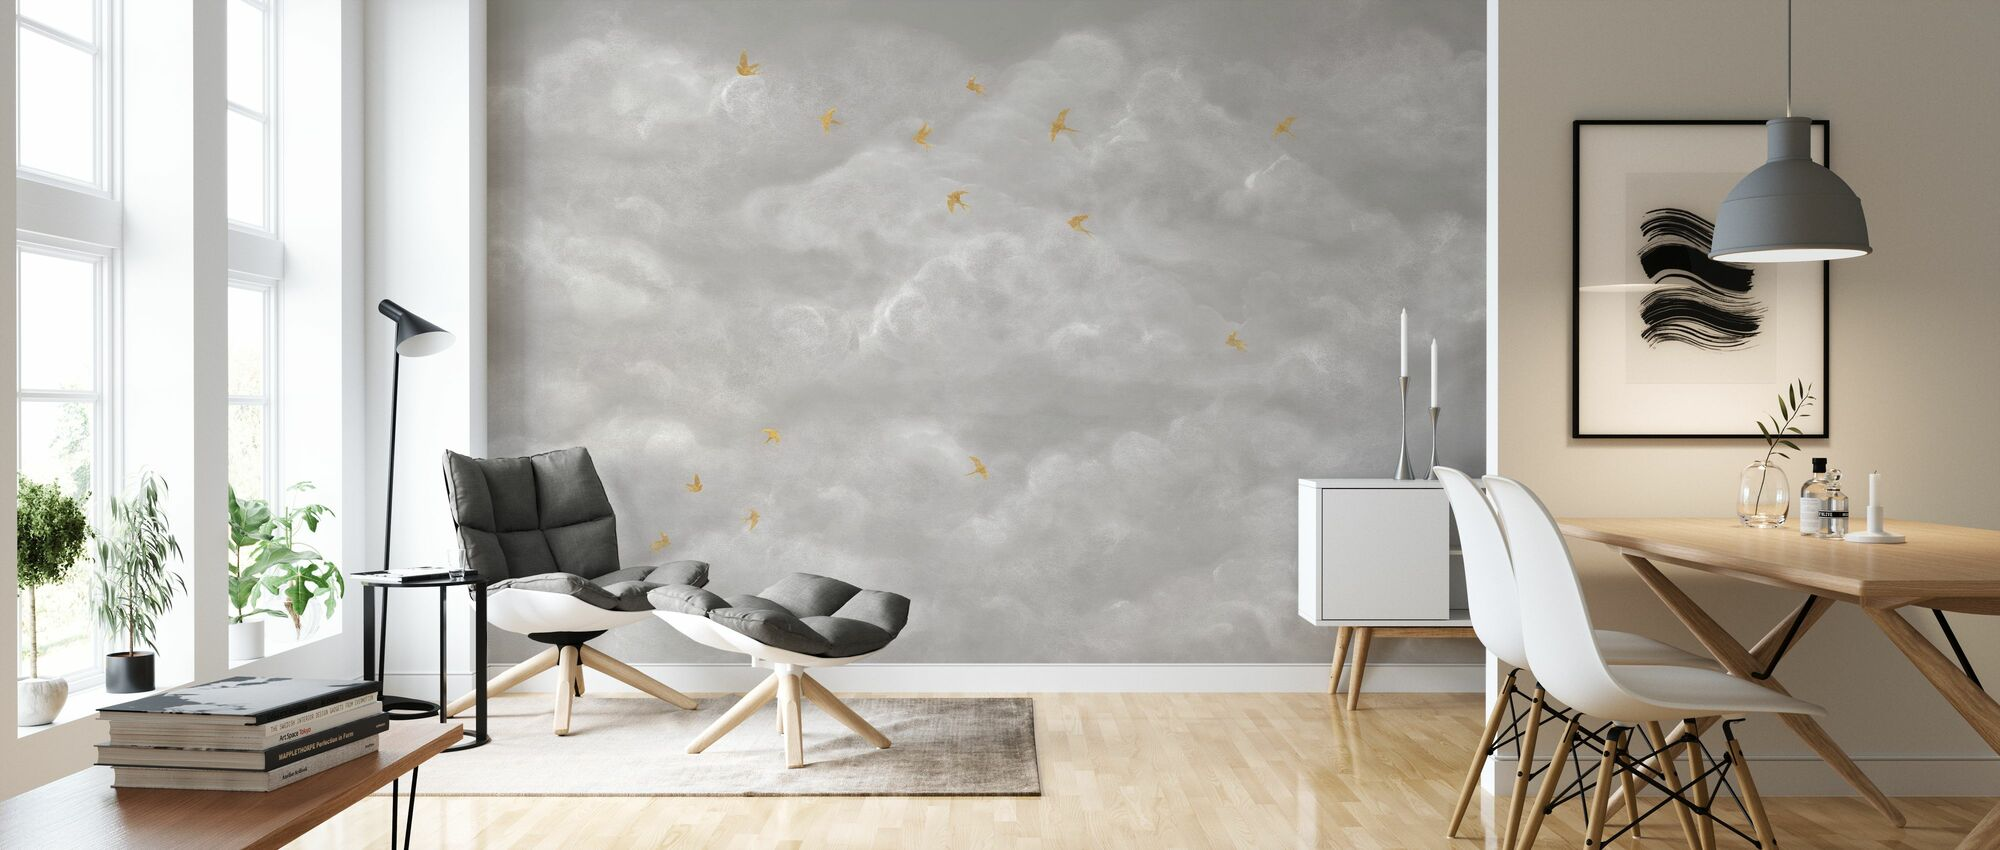 Tender Clouds with Yellow Swallows - Beige - Wallpaper - Living Room